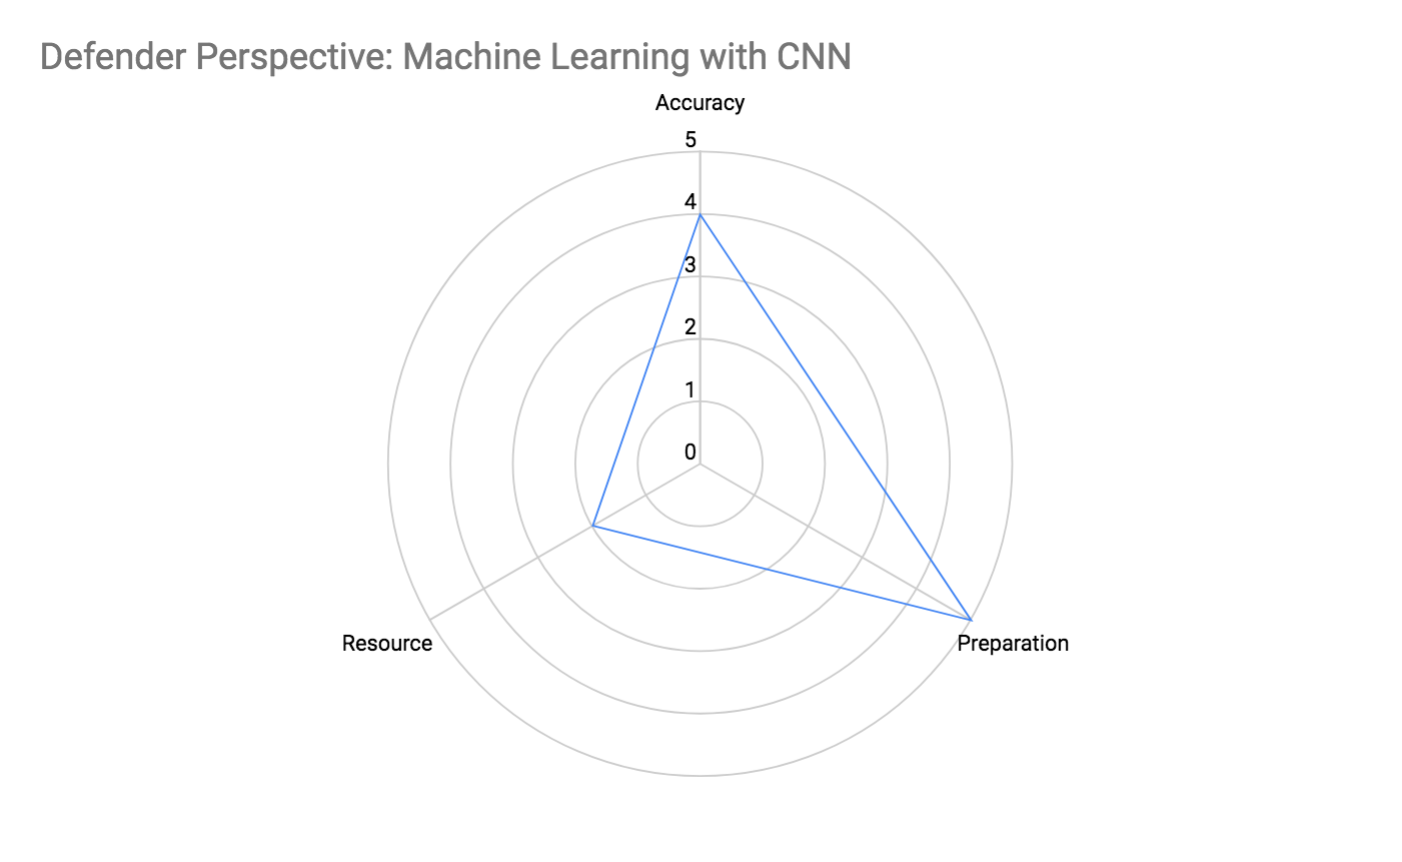 Defender Perspective: Machine Learning With CNN